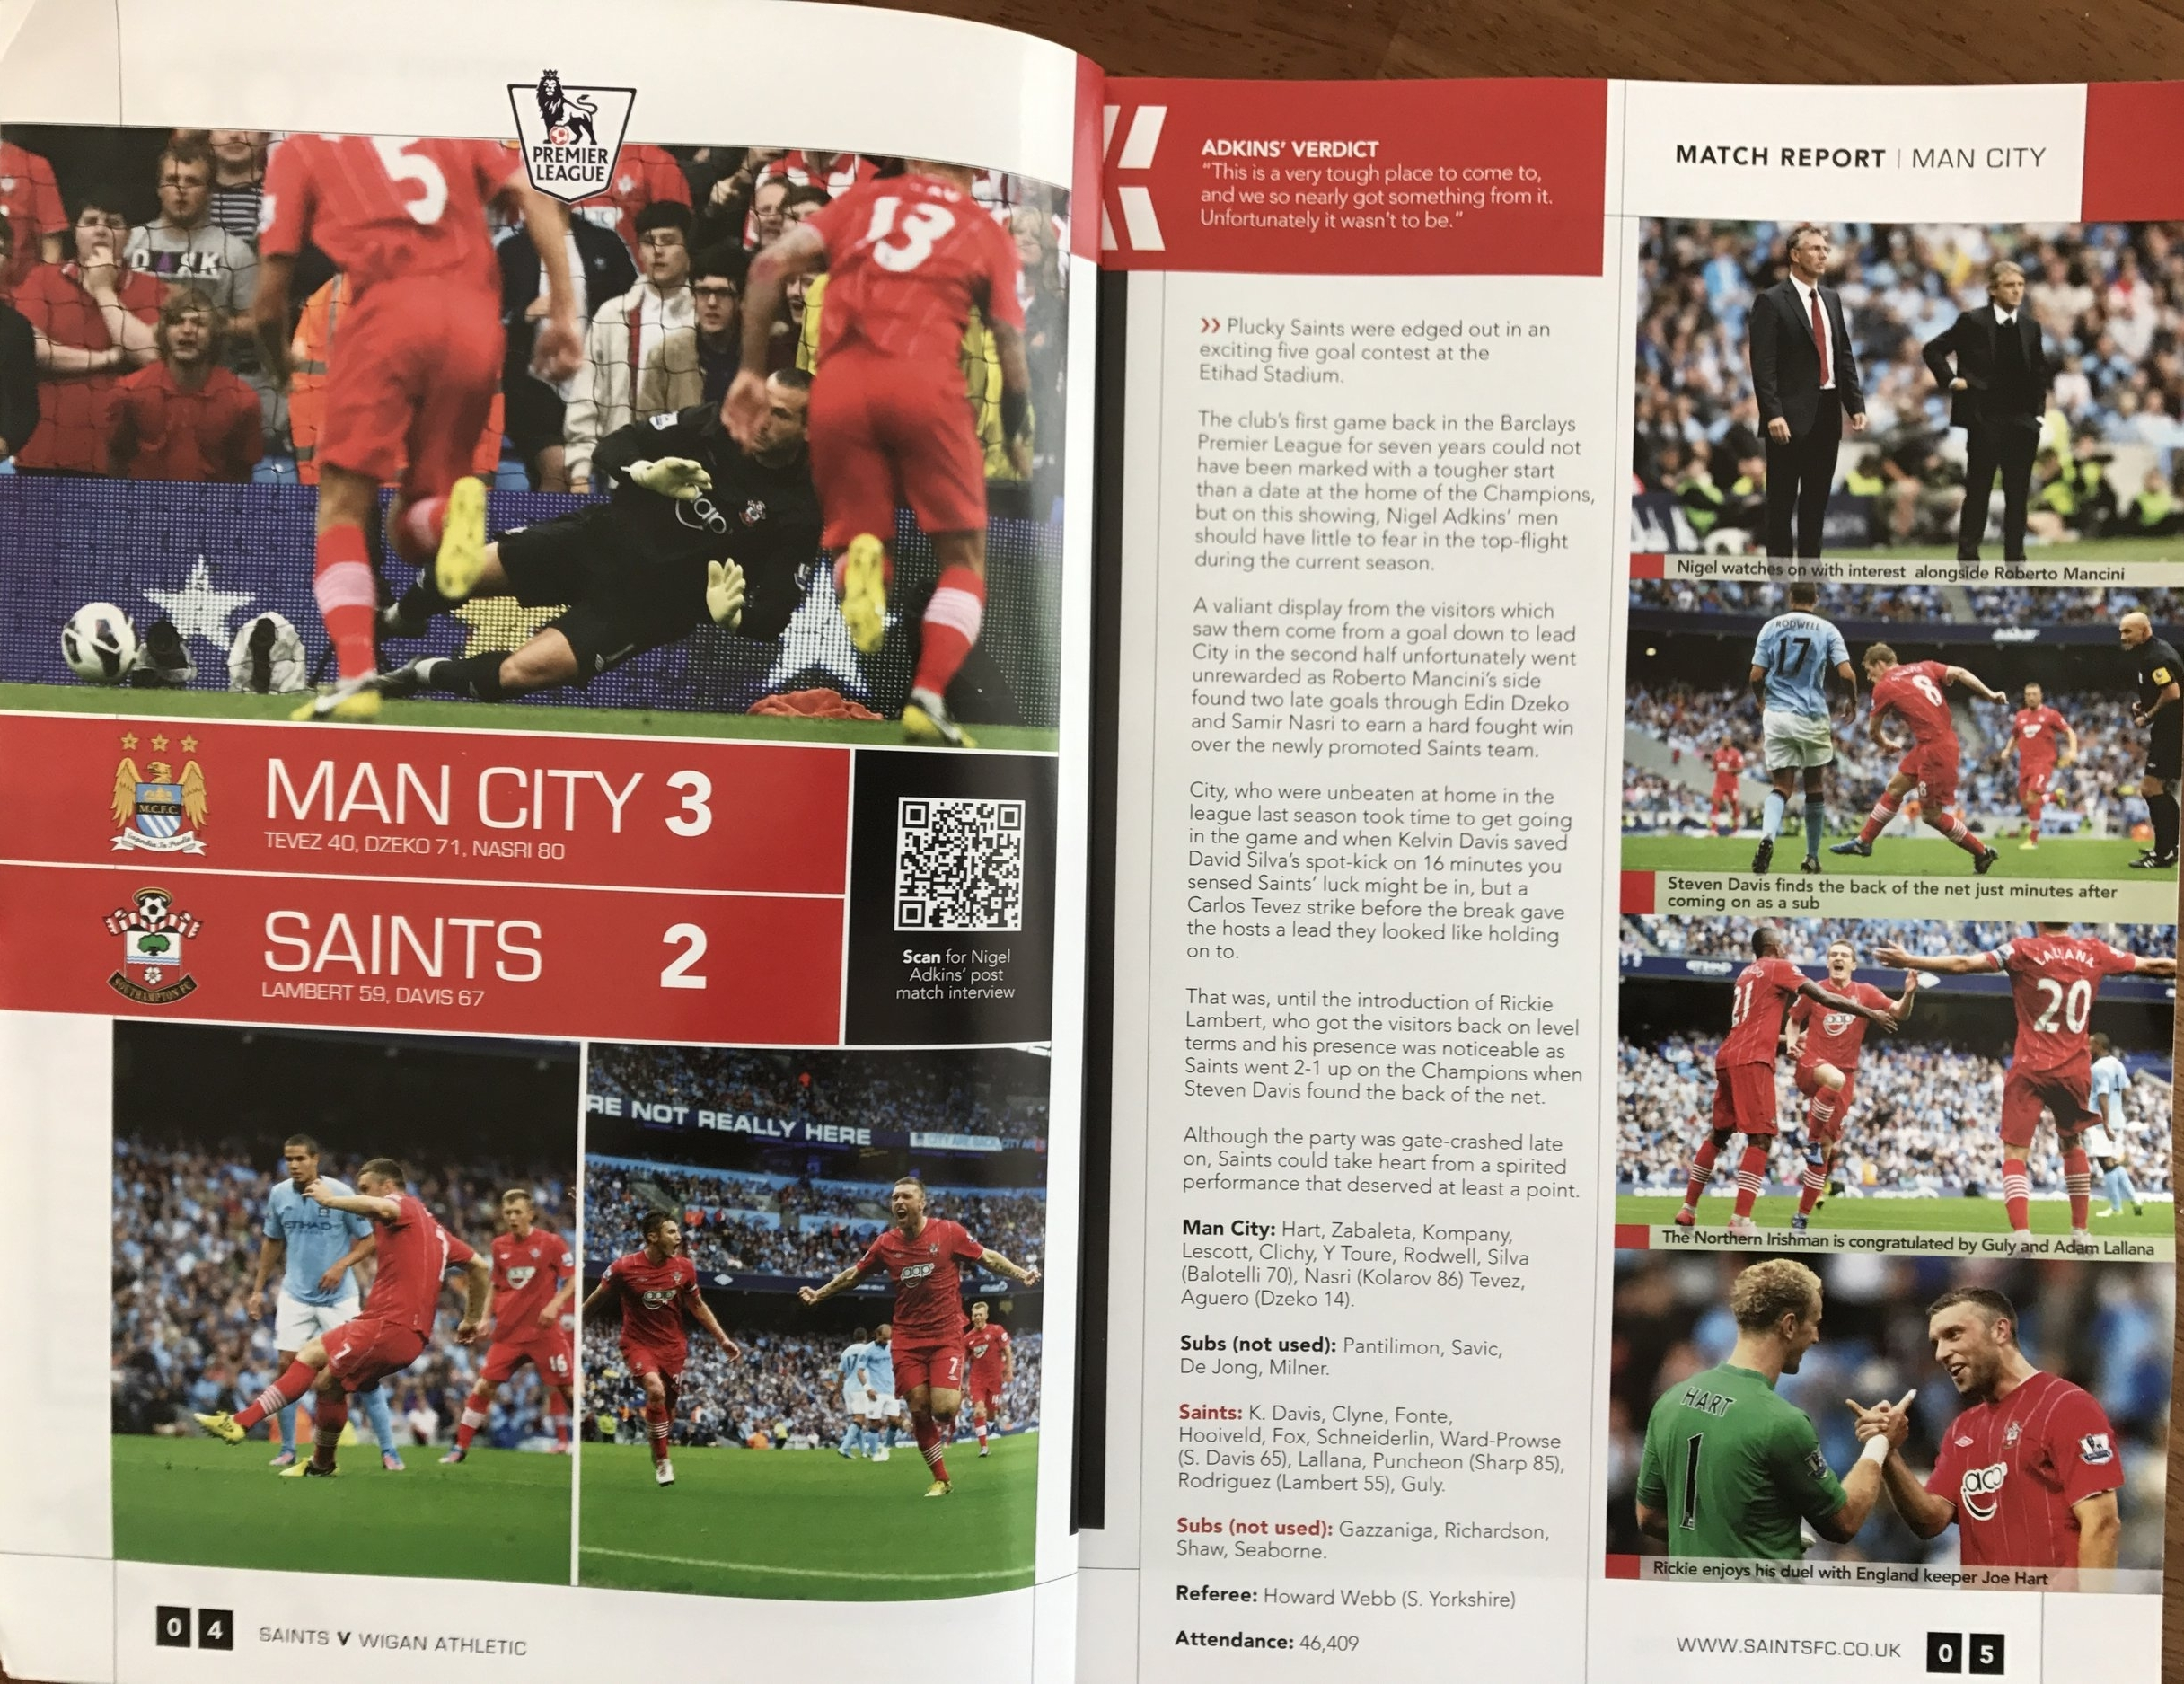 This is how the Manchester City game was reported in the Southampton match day programme against Wigan Athletic. Fantastic memories.